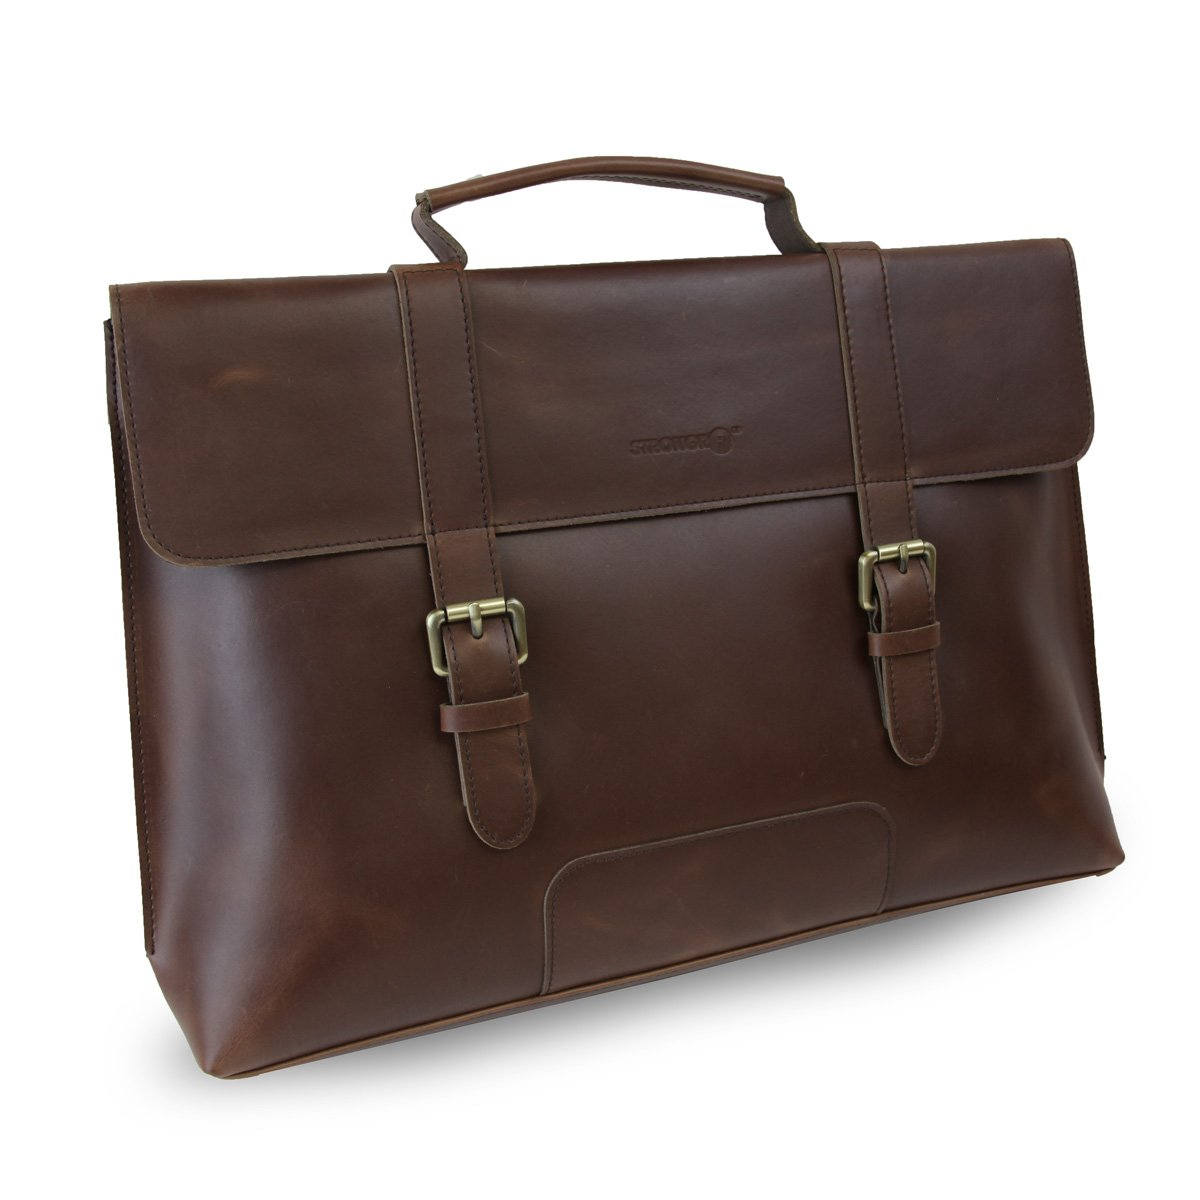 LB1 High Performance Leather Unisex Business Messenger Bag Briefcase Bag for 17-inch-and-under Laptop Computer PC Tablet Mobile Devices and more (Brown)